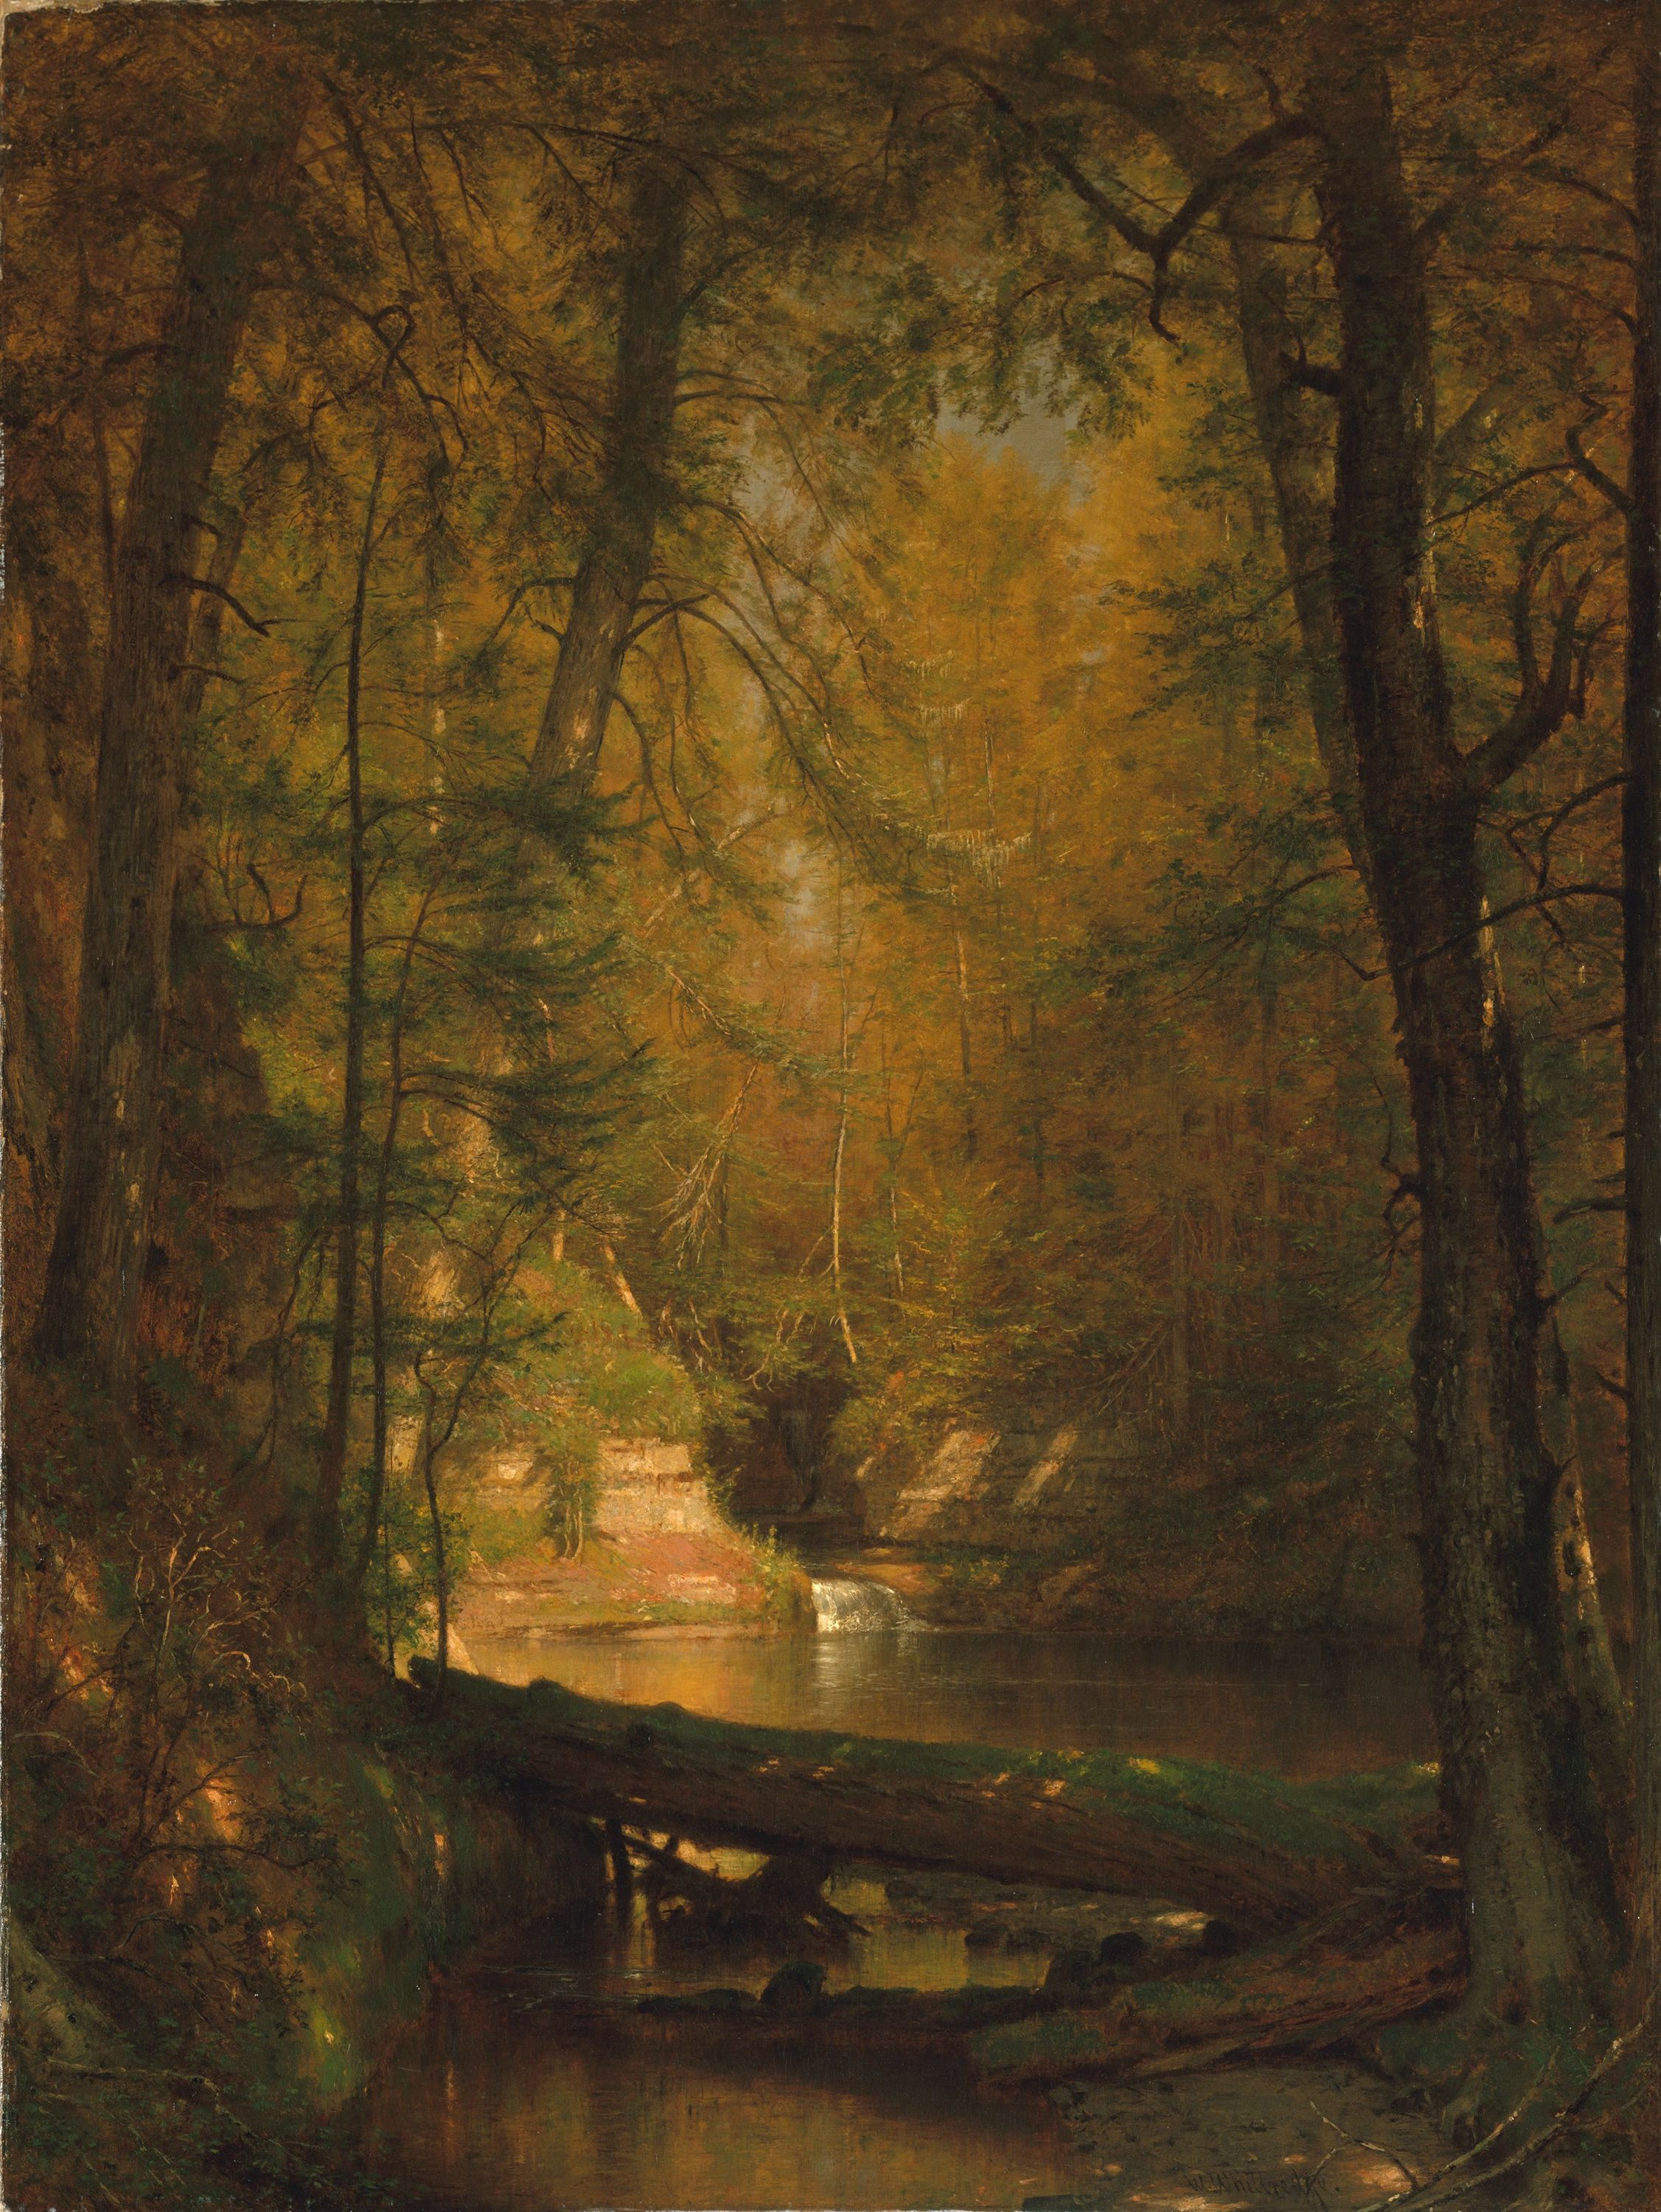 The Trout Pool by Thomas Worthington Whittredge.